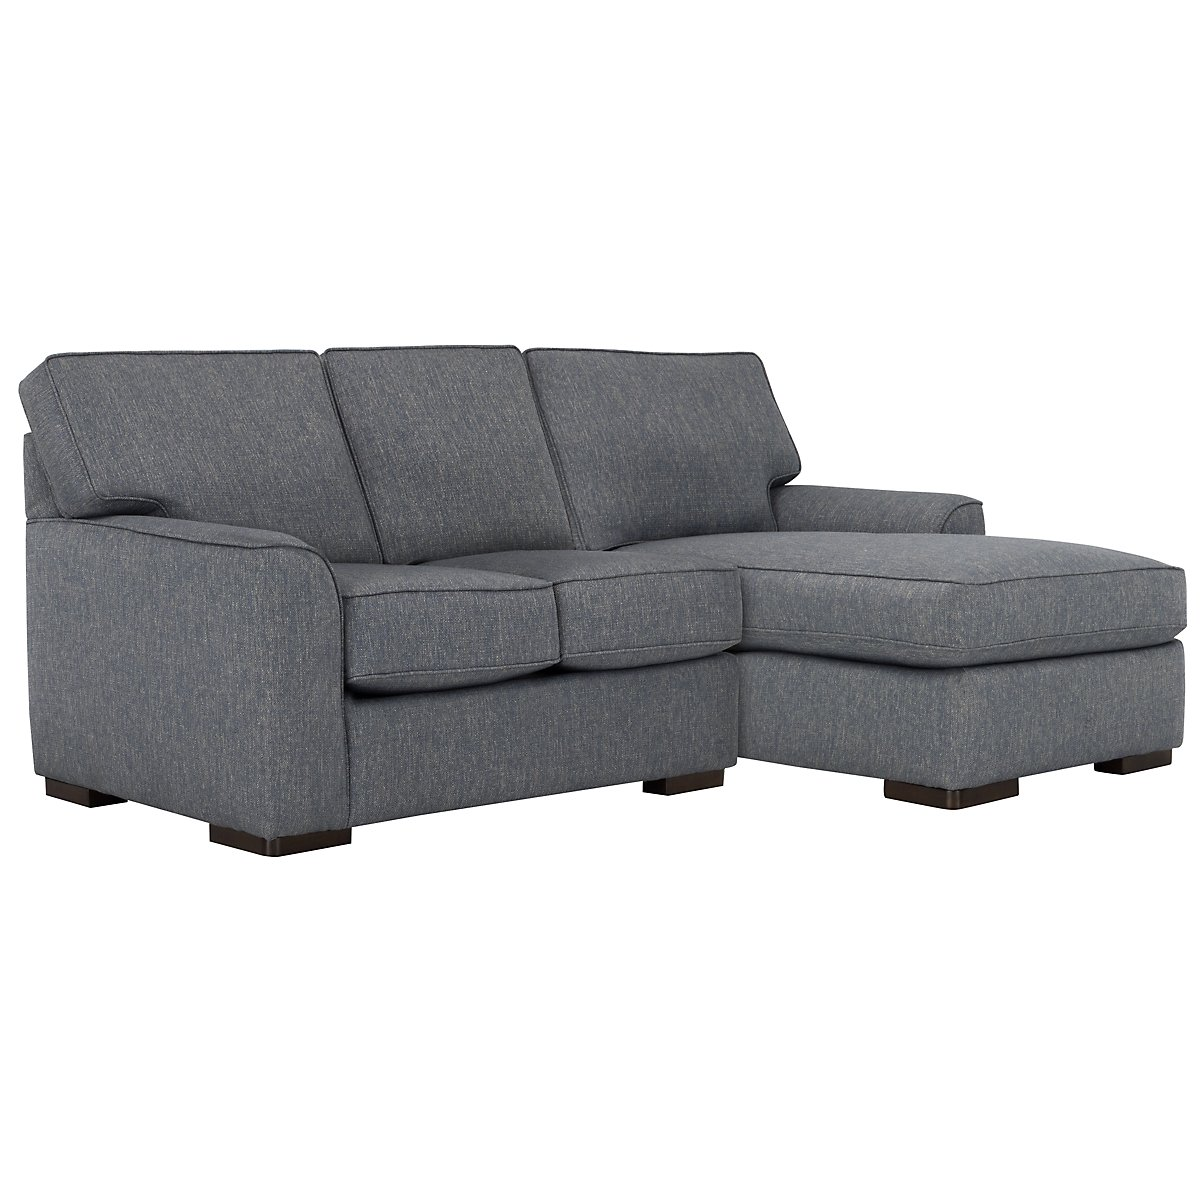 City furniture austin blue fabric right chaise sectional for Blue sectional sofa with chaise